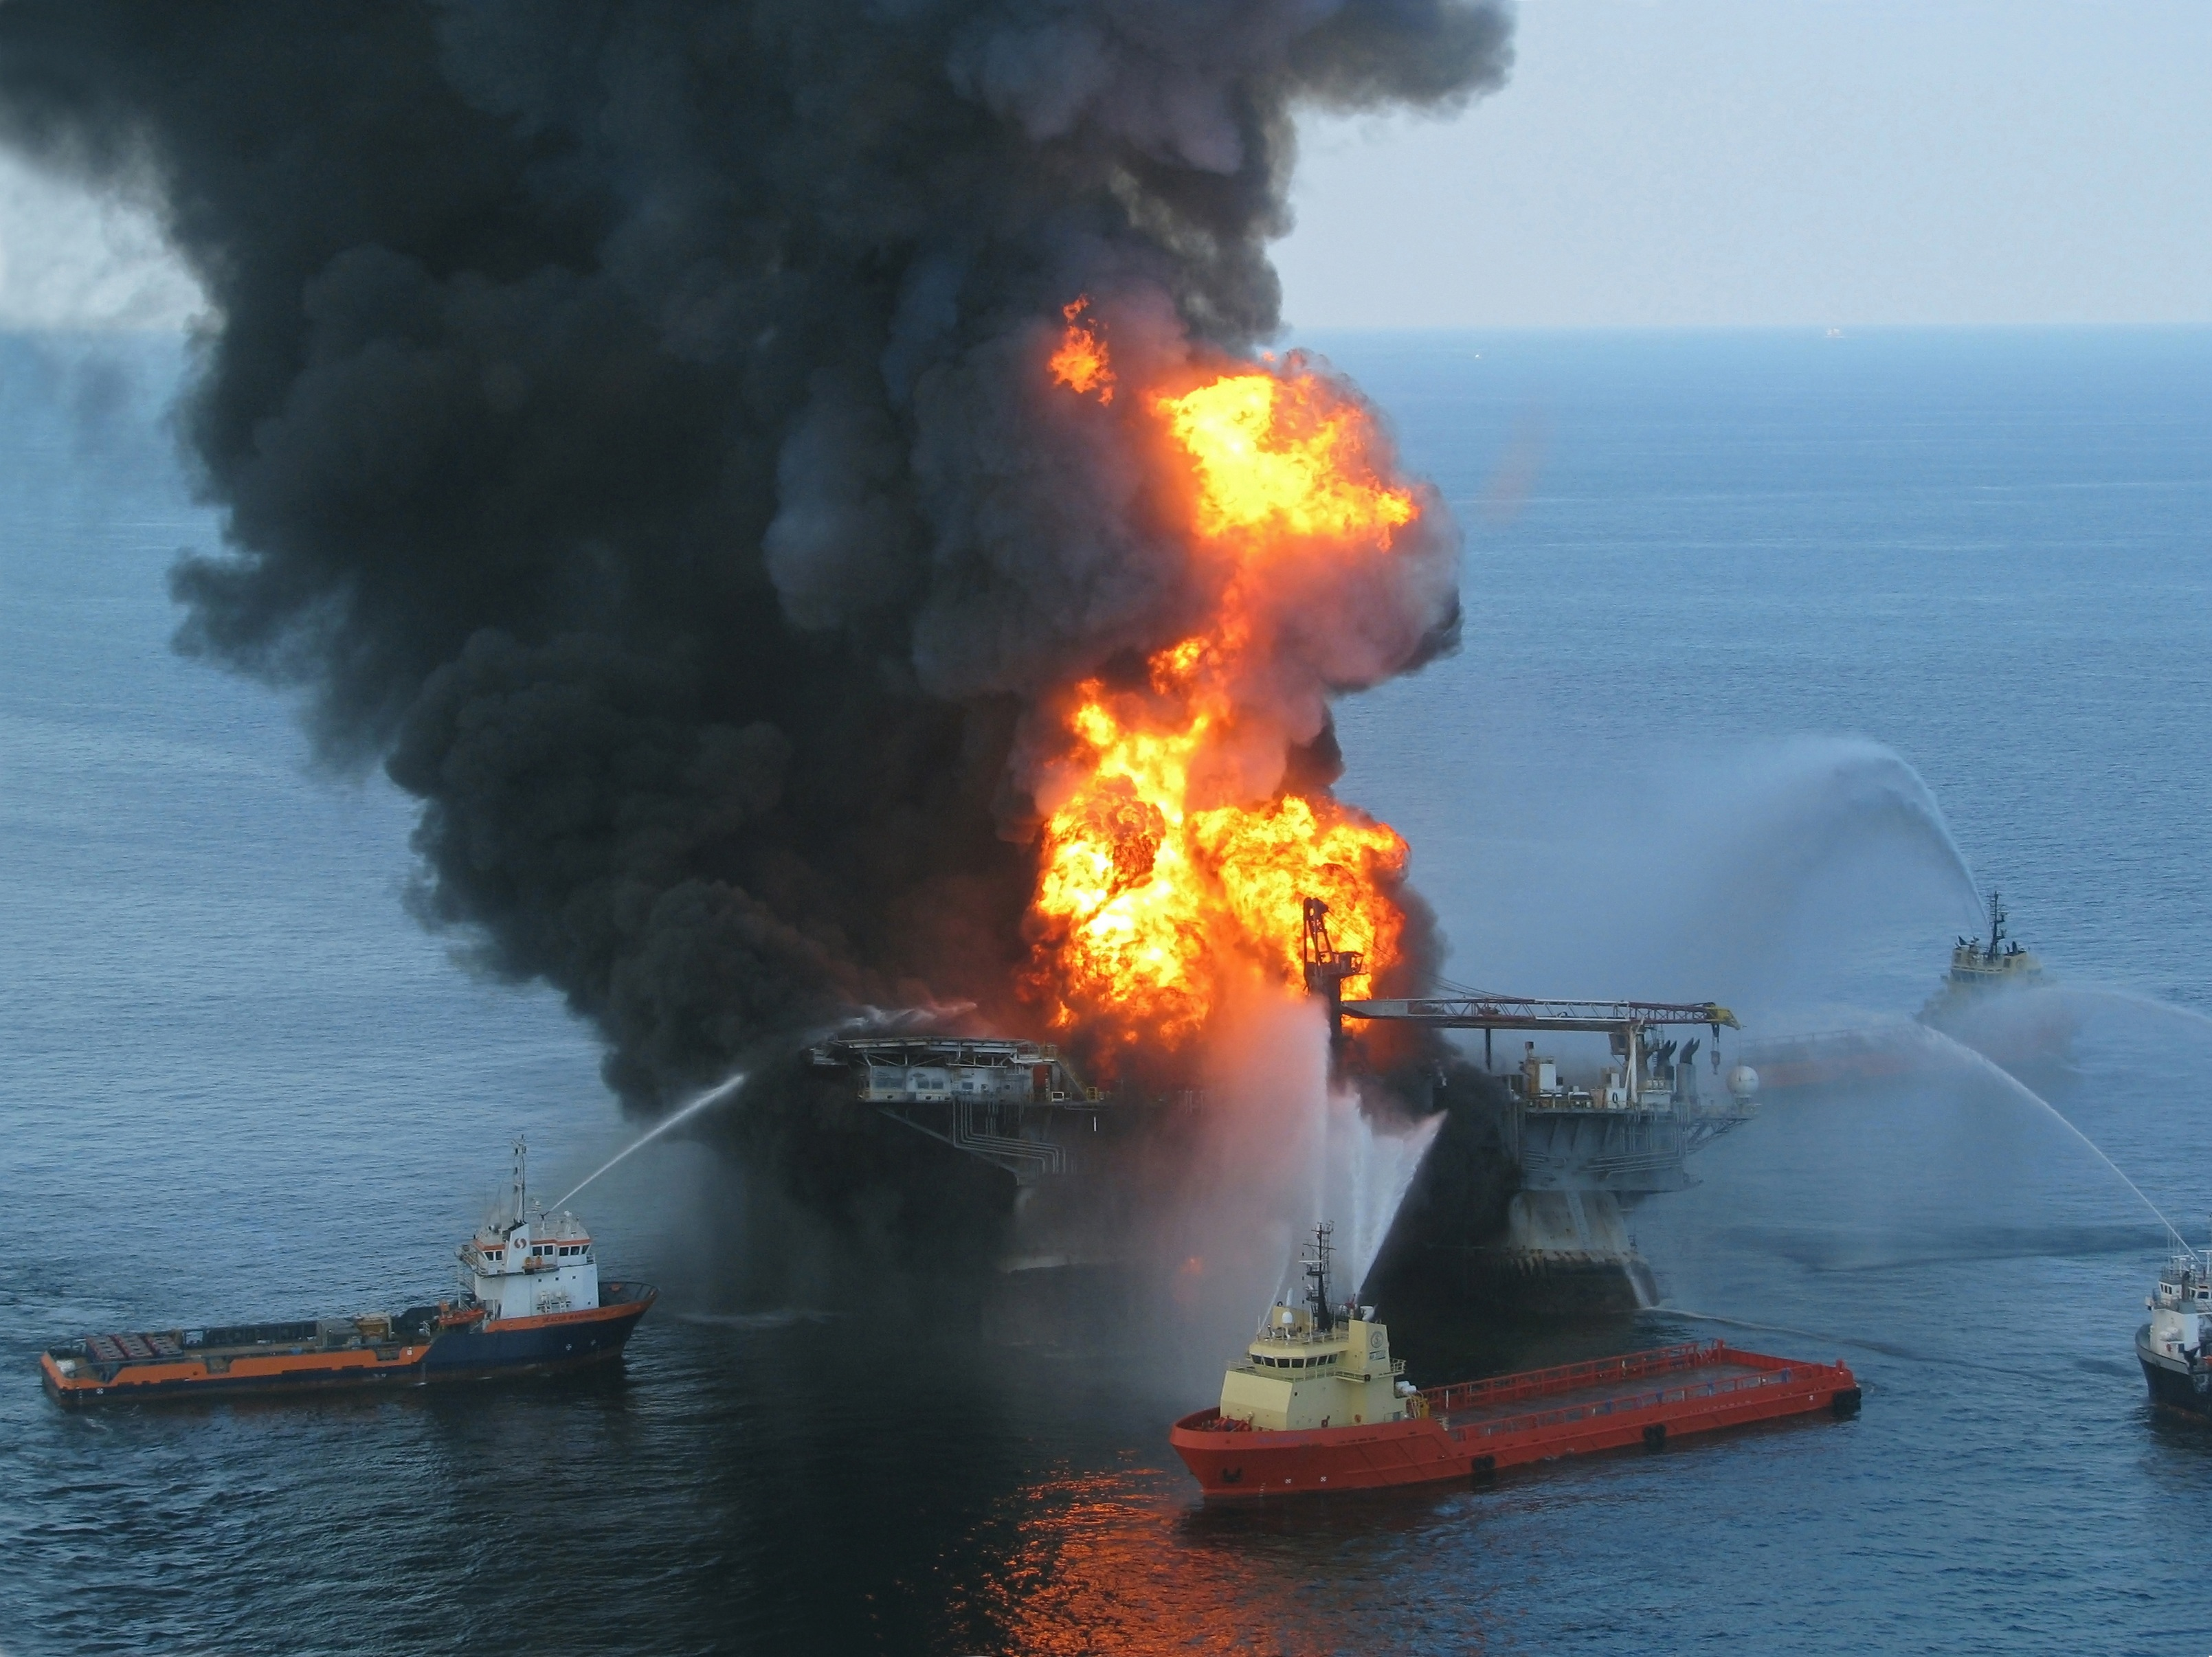 Flames and thick smoke erupt from the Deepwater Horizon oil rig.